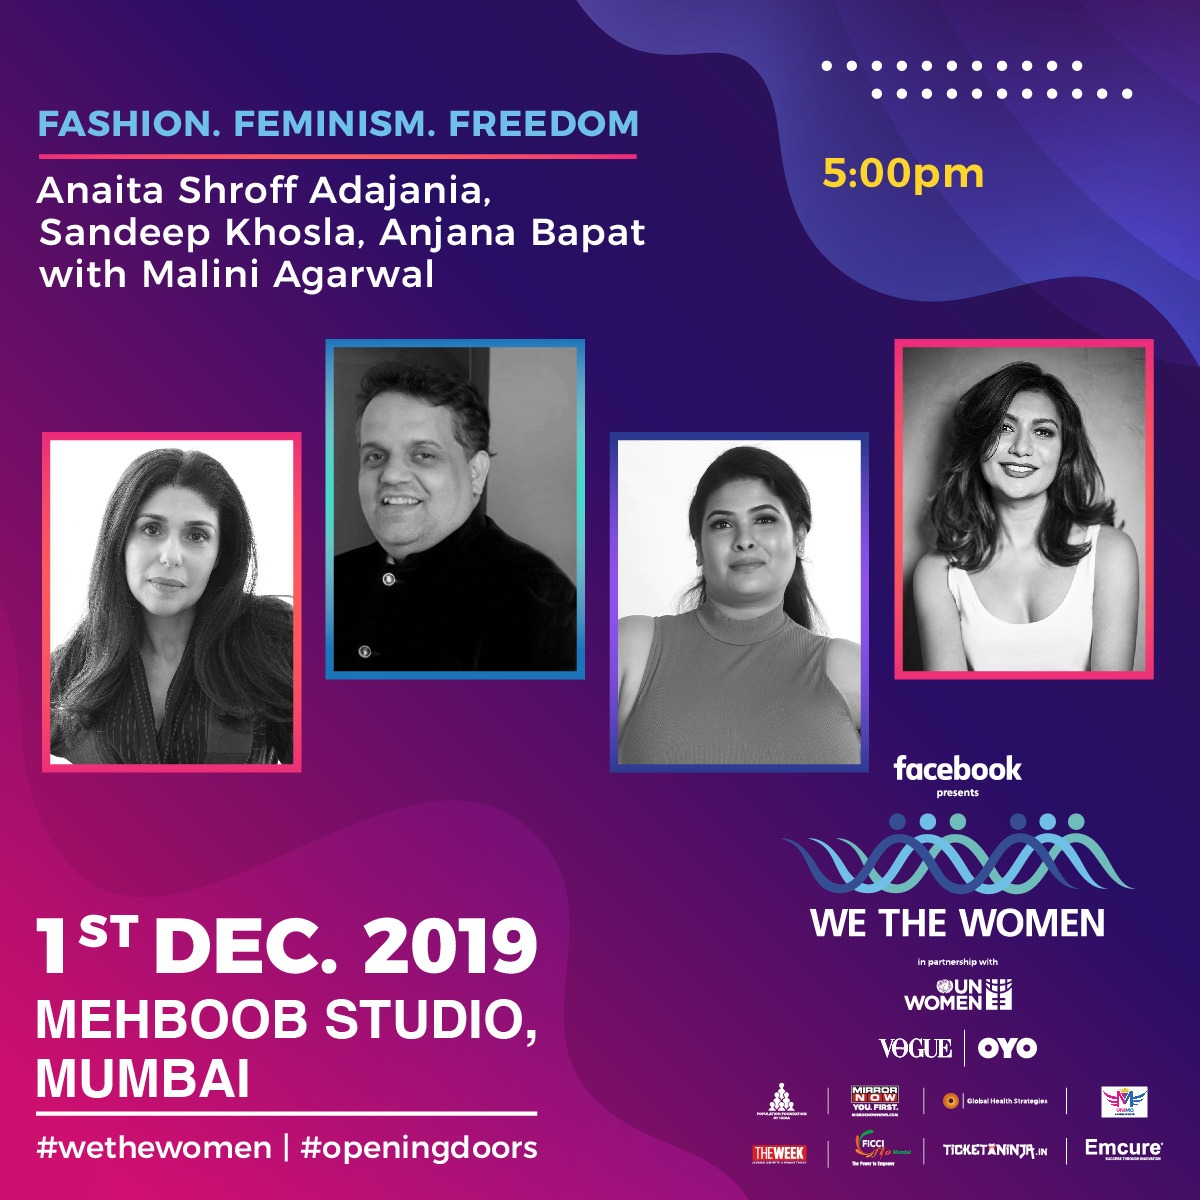 Fashion. Feminism. Freedom. Don't miss this scintillating conversation tomorrow in Mumbai at Mehboob Studio @WeTheWomenAsia with the incomparably talented @Anaita_Adajania @AJSKOfficial Anjana Bapat @MissMalini. Just a few hours before registration closes. Book @TicketNinjaIN